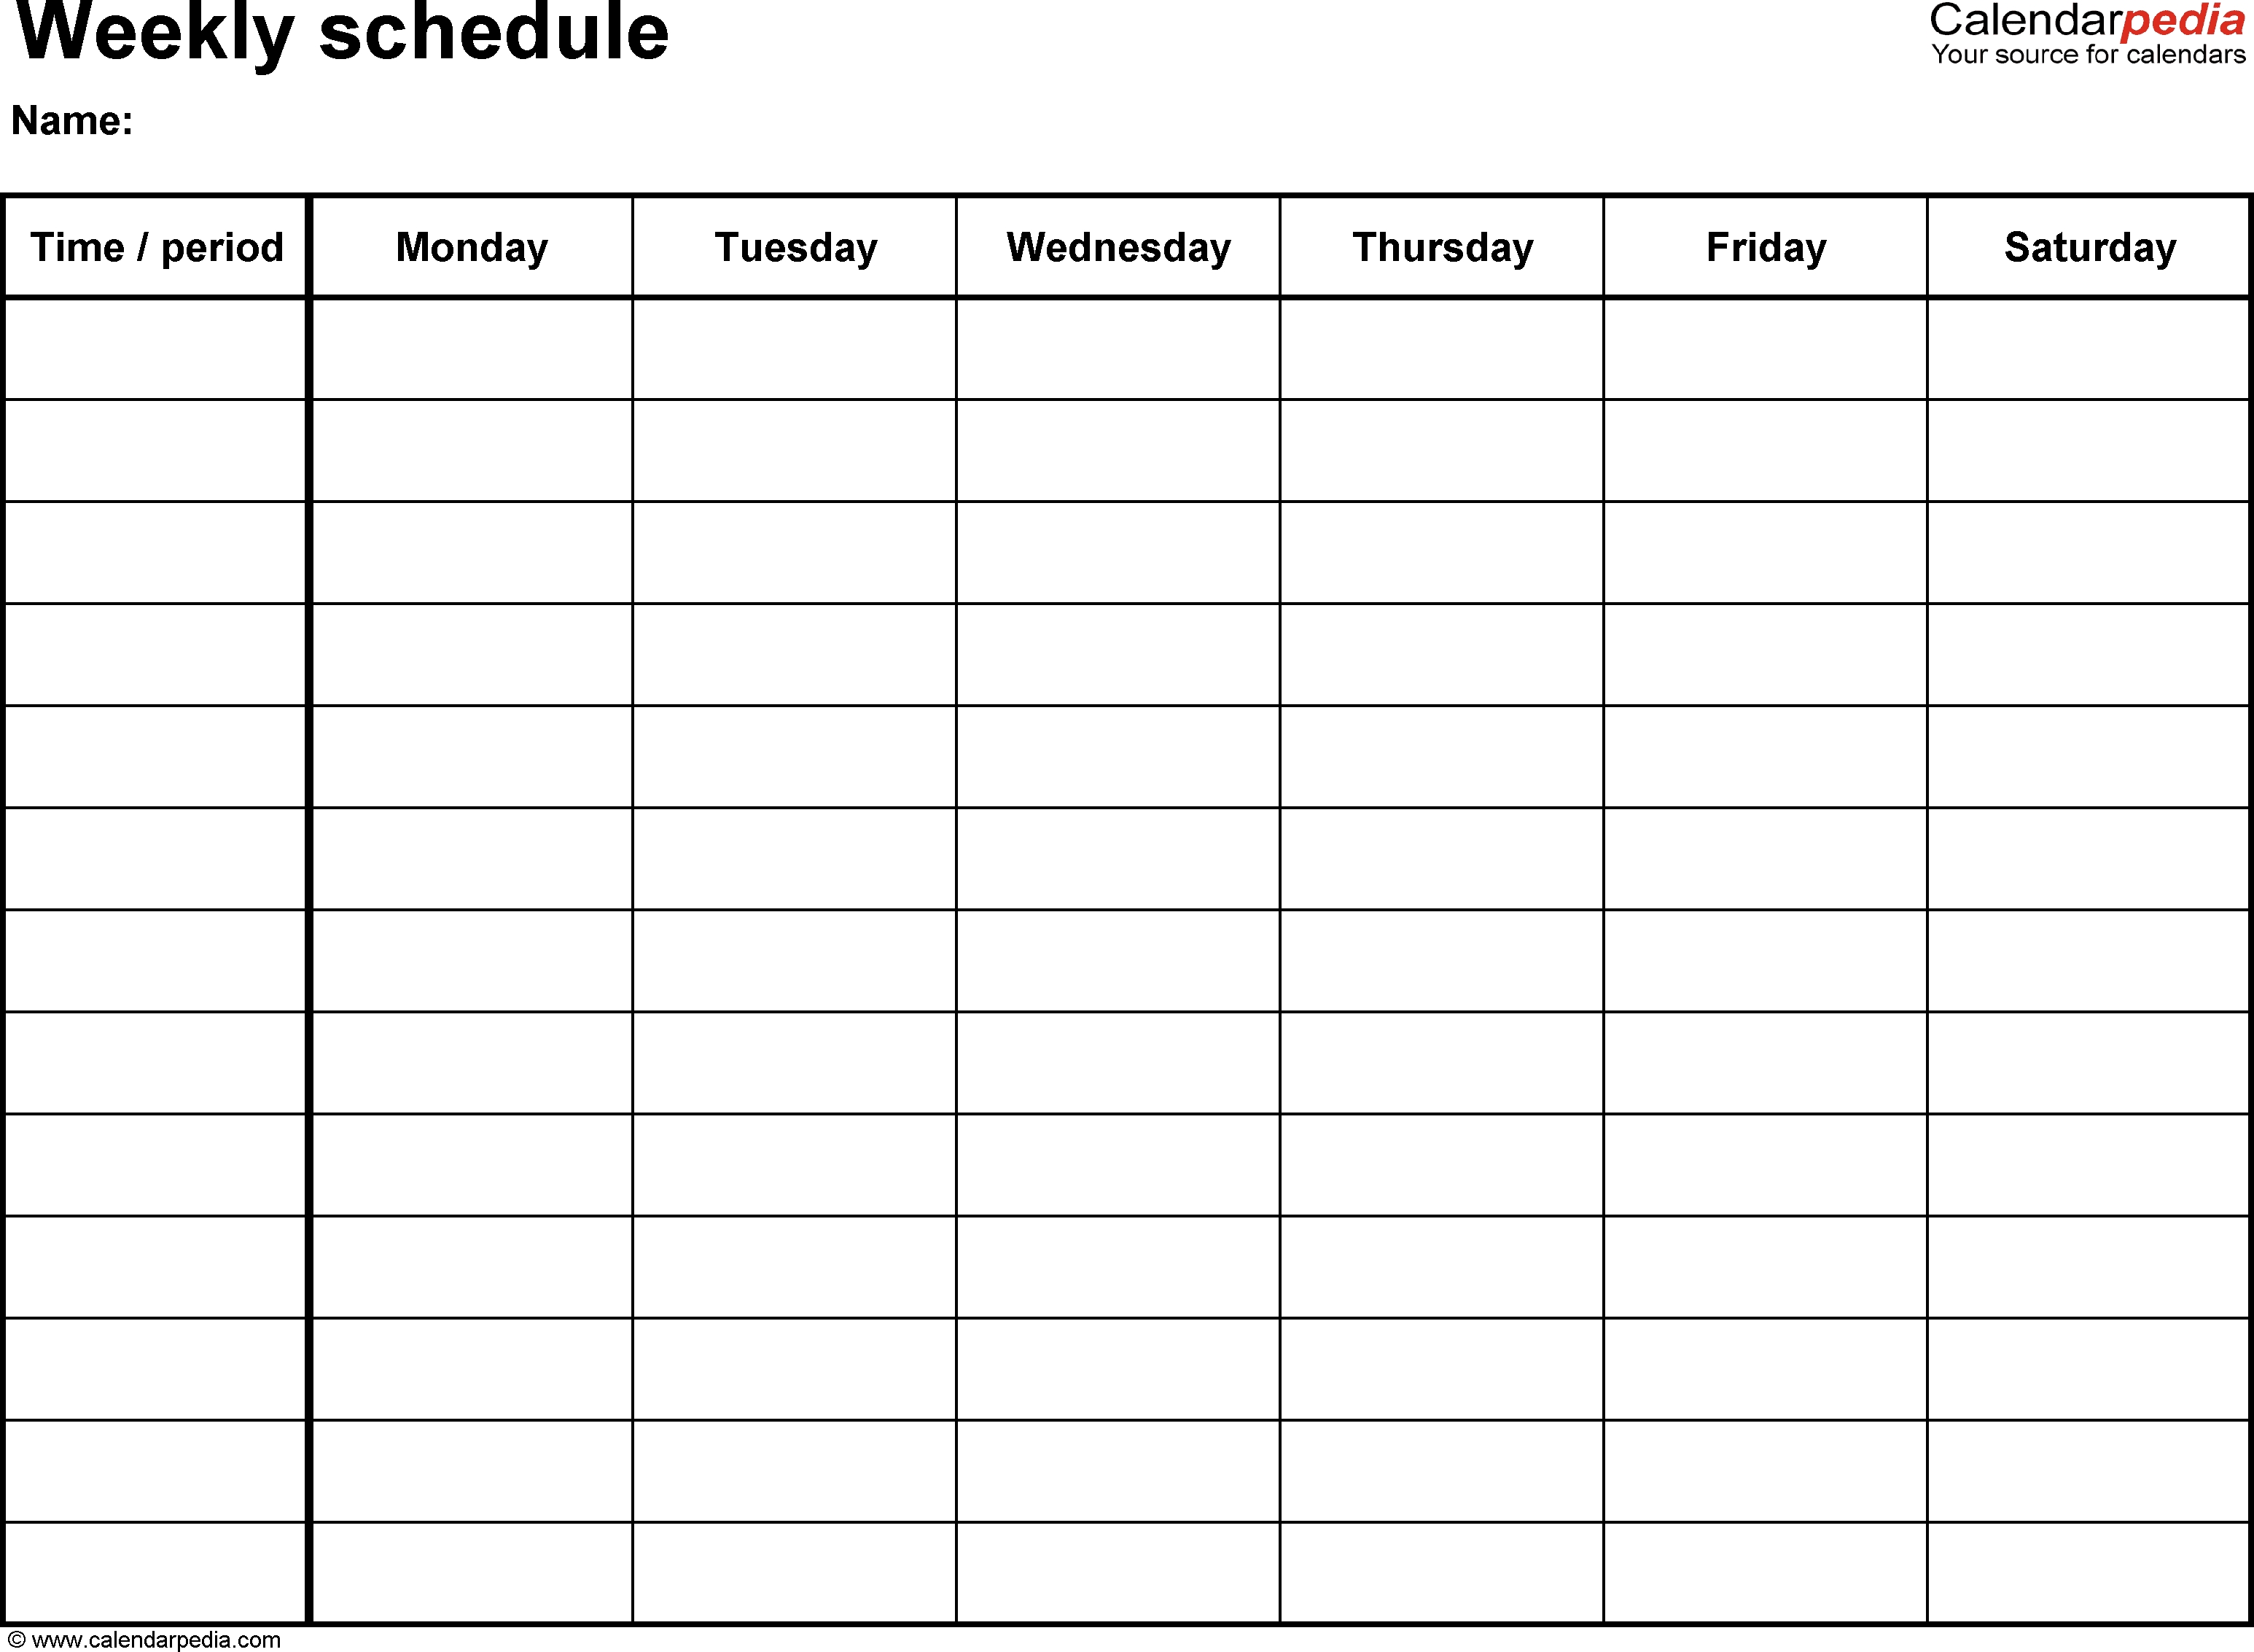 Free Weekly Schedule Templates For Word - 18 Templates-Fill In Calendar Template